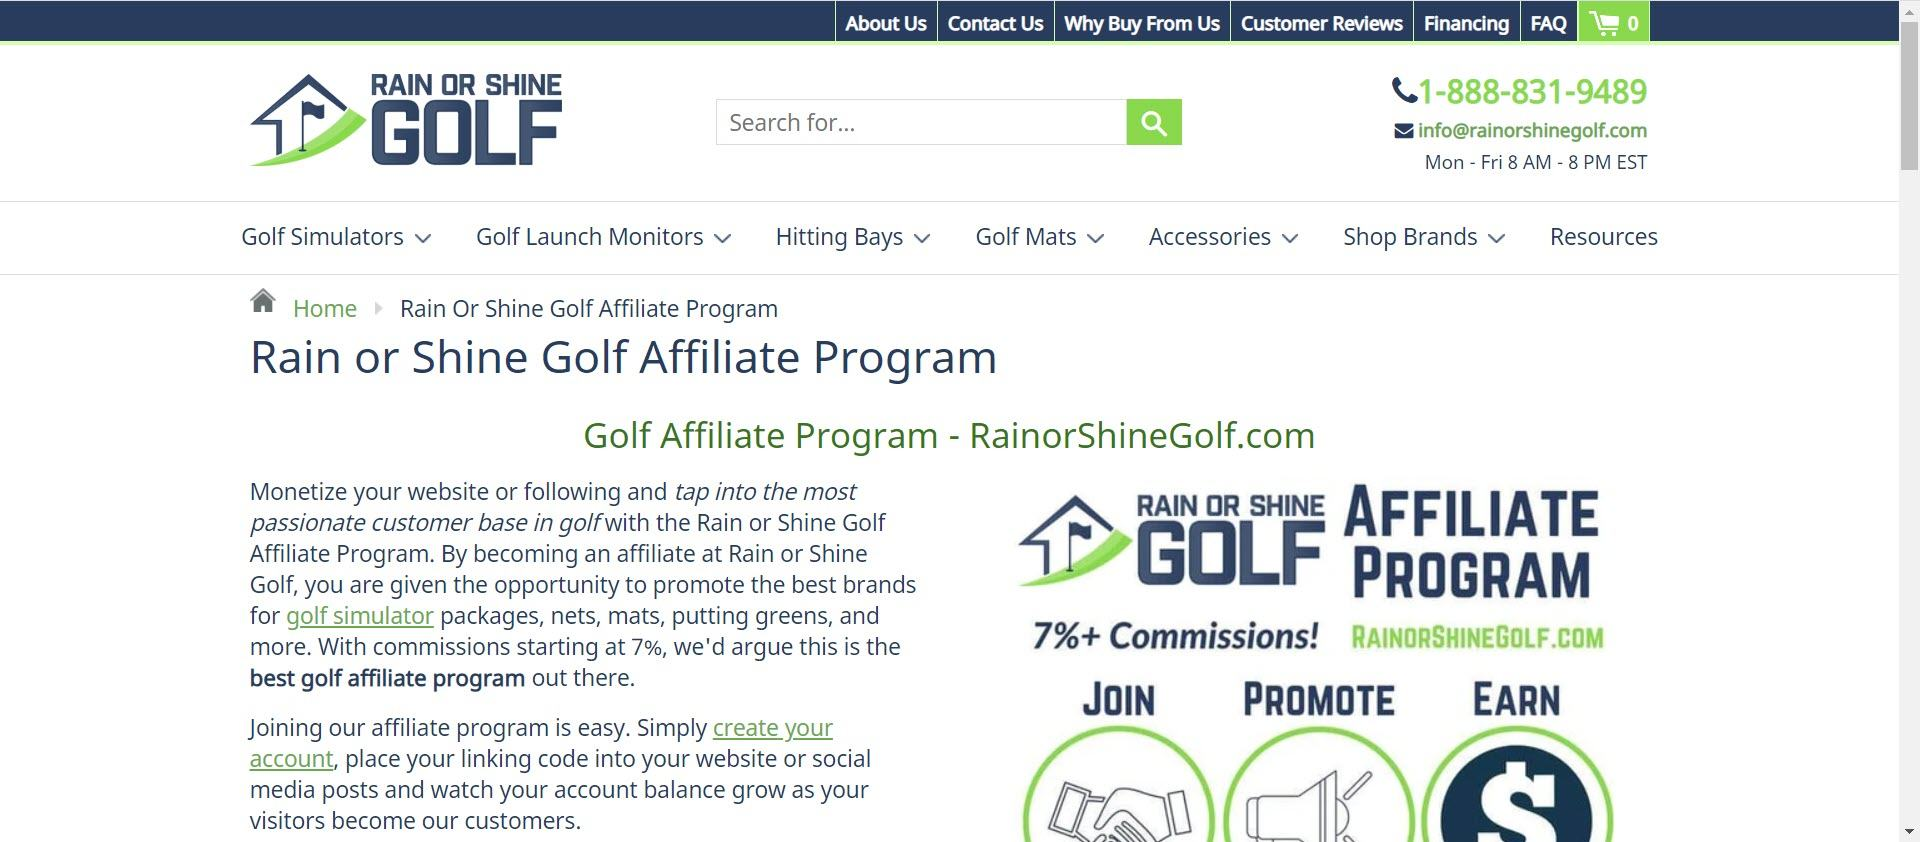 Best Golf Affiliate Programs - Rain or Shine affiliate